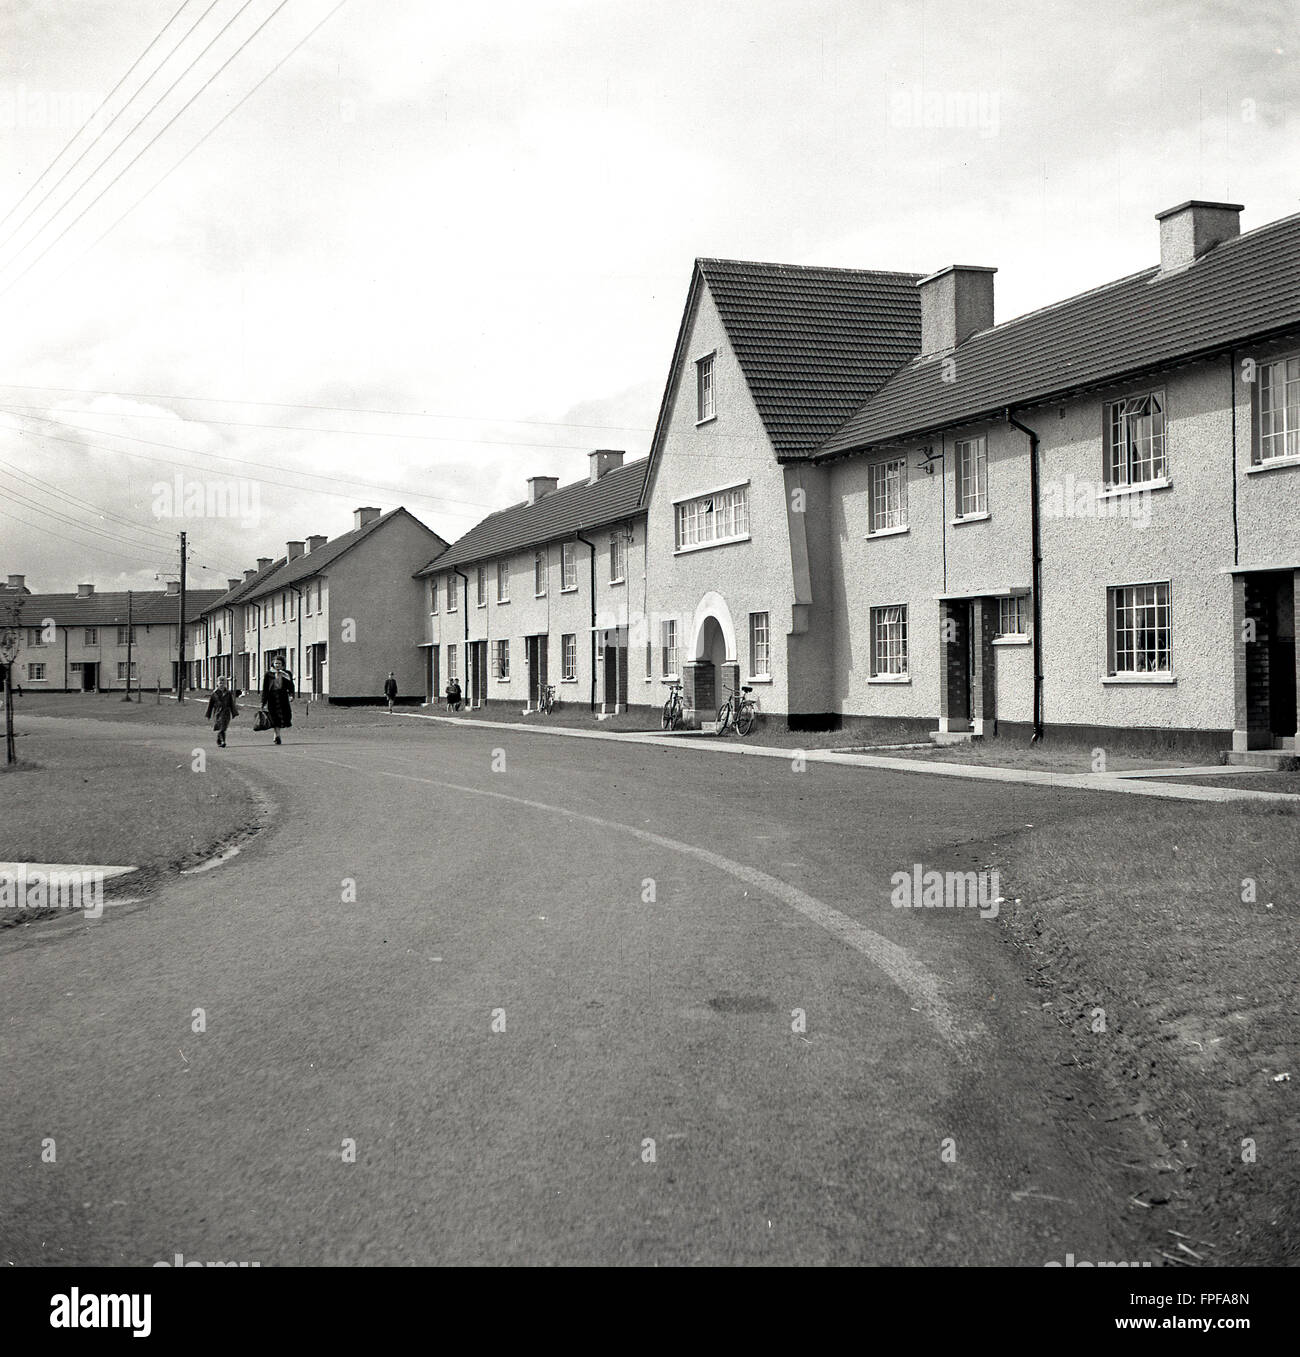 1950s historical, new housing estate at Clane, County Kildare, Ireland. - Stock Image